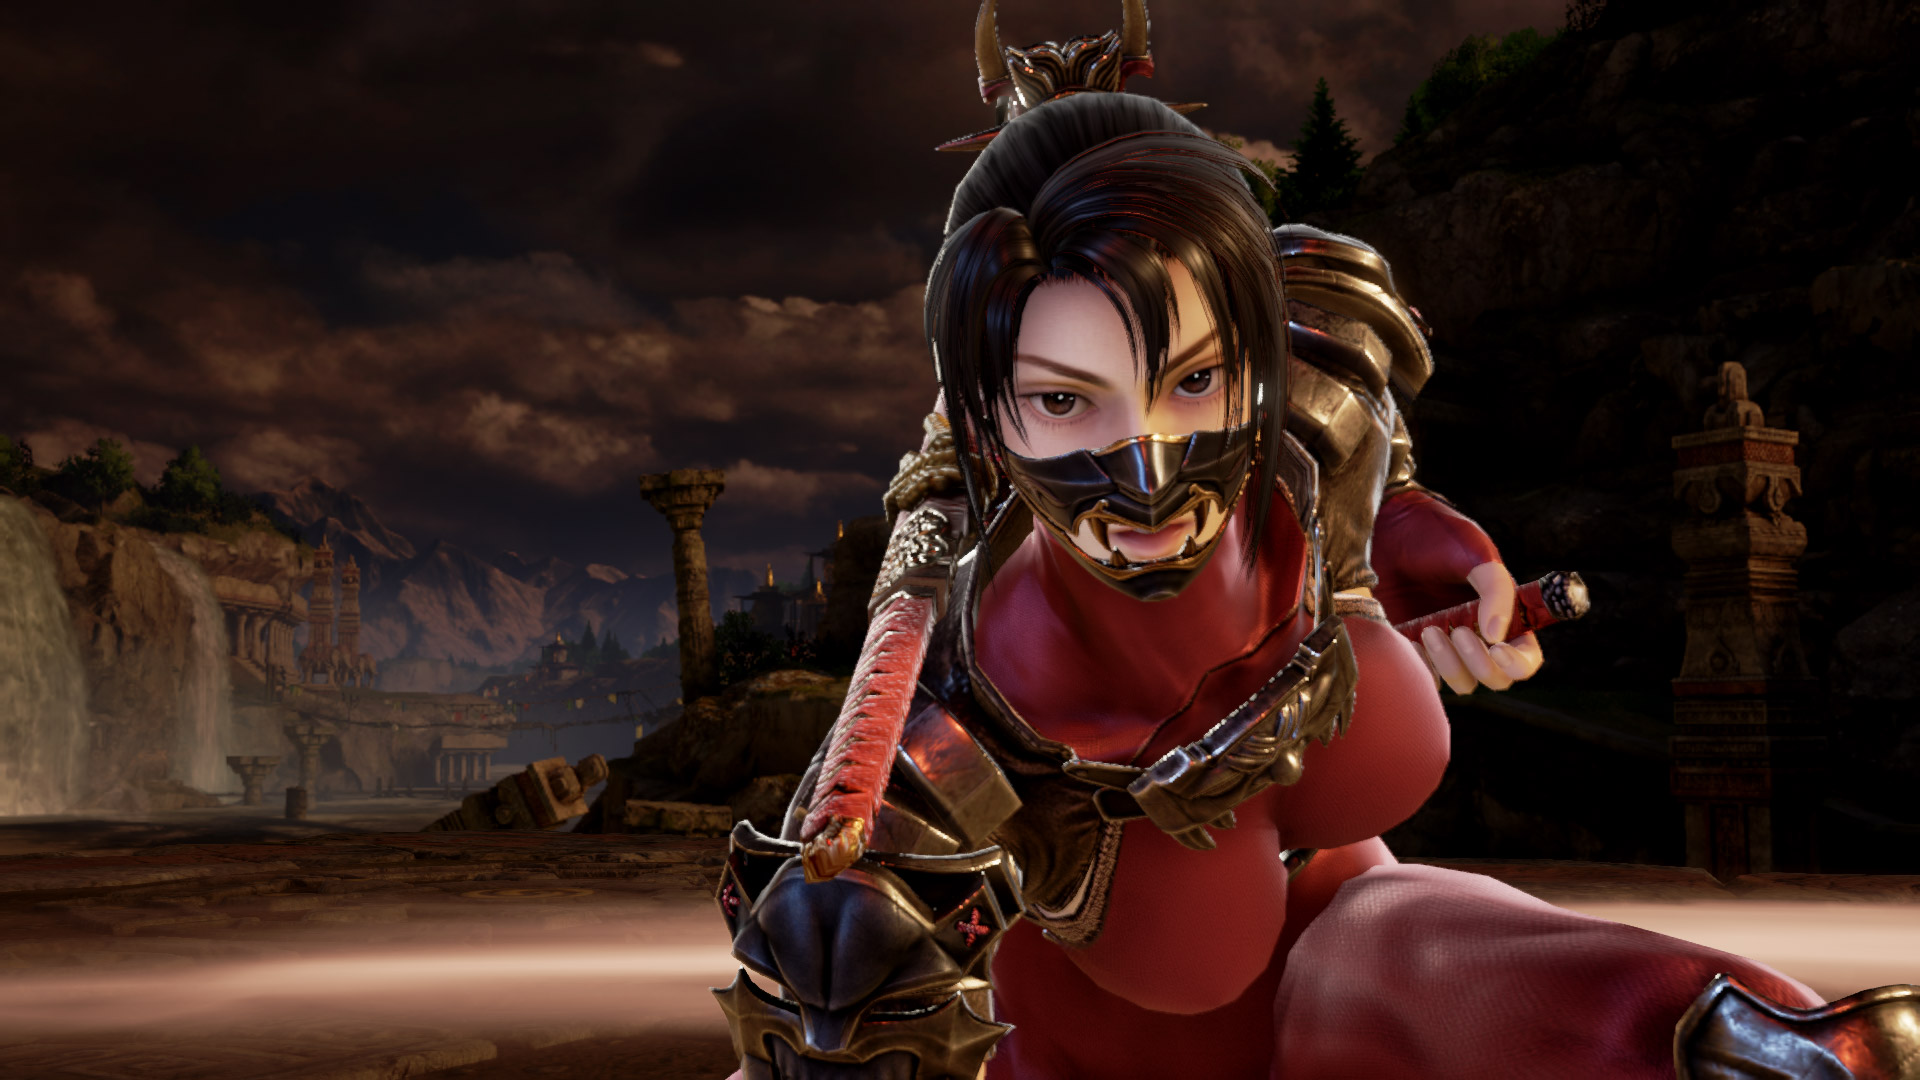 Soulcalibur VI Wallpaper in 1920x1080